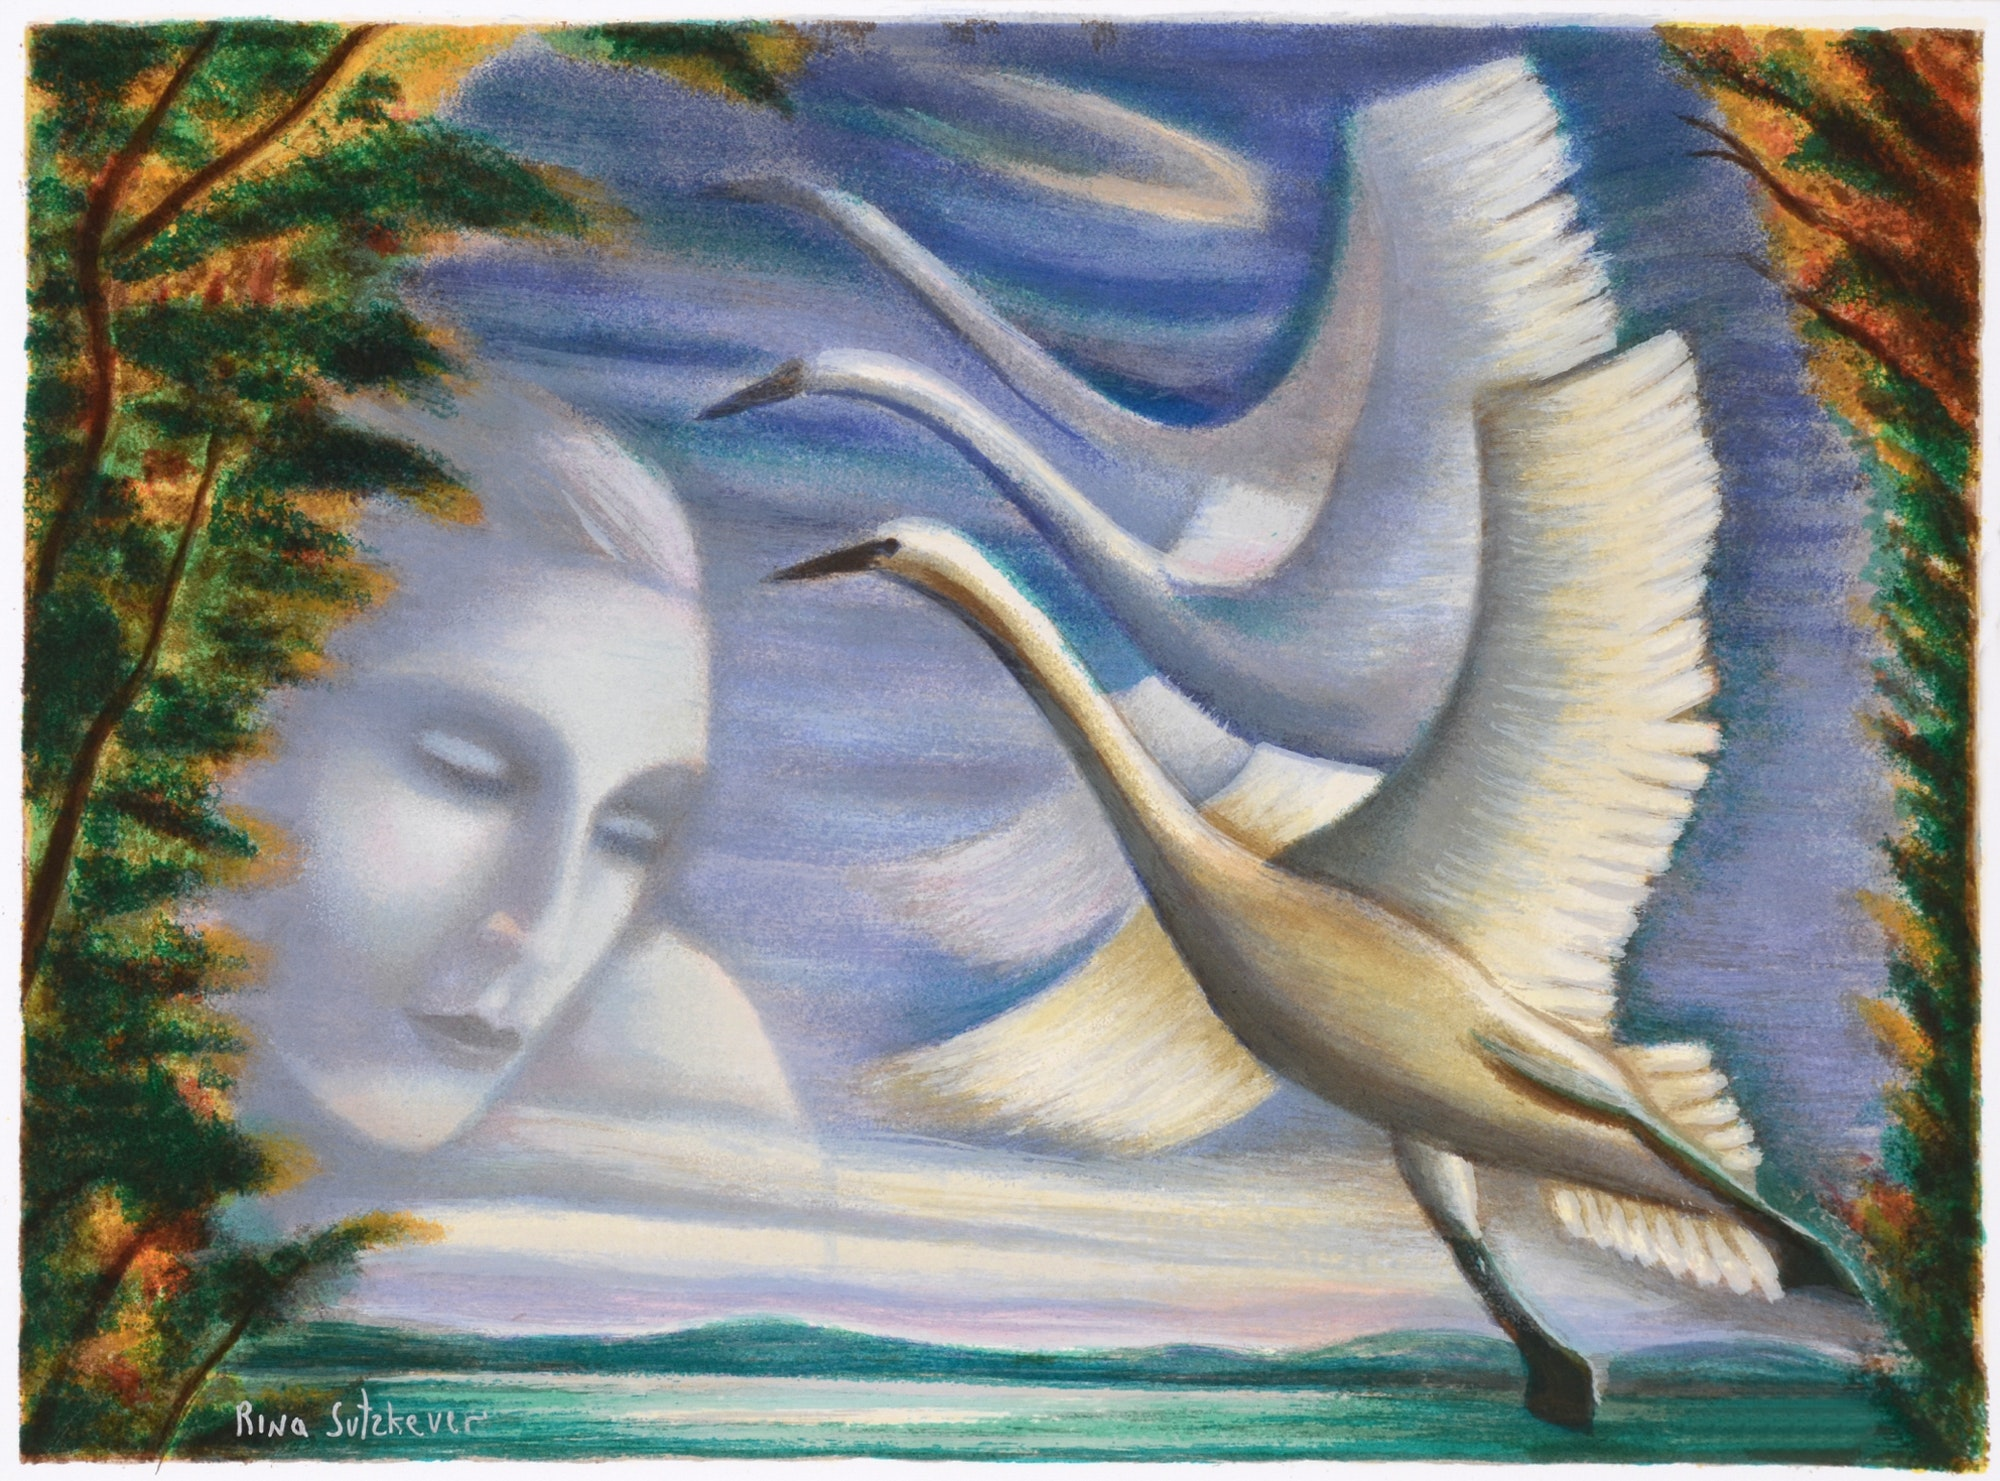 """Rina Sutzkever Limited Edition Signed Serigraph on Paper """"Fly Away"""""""